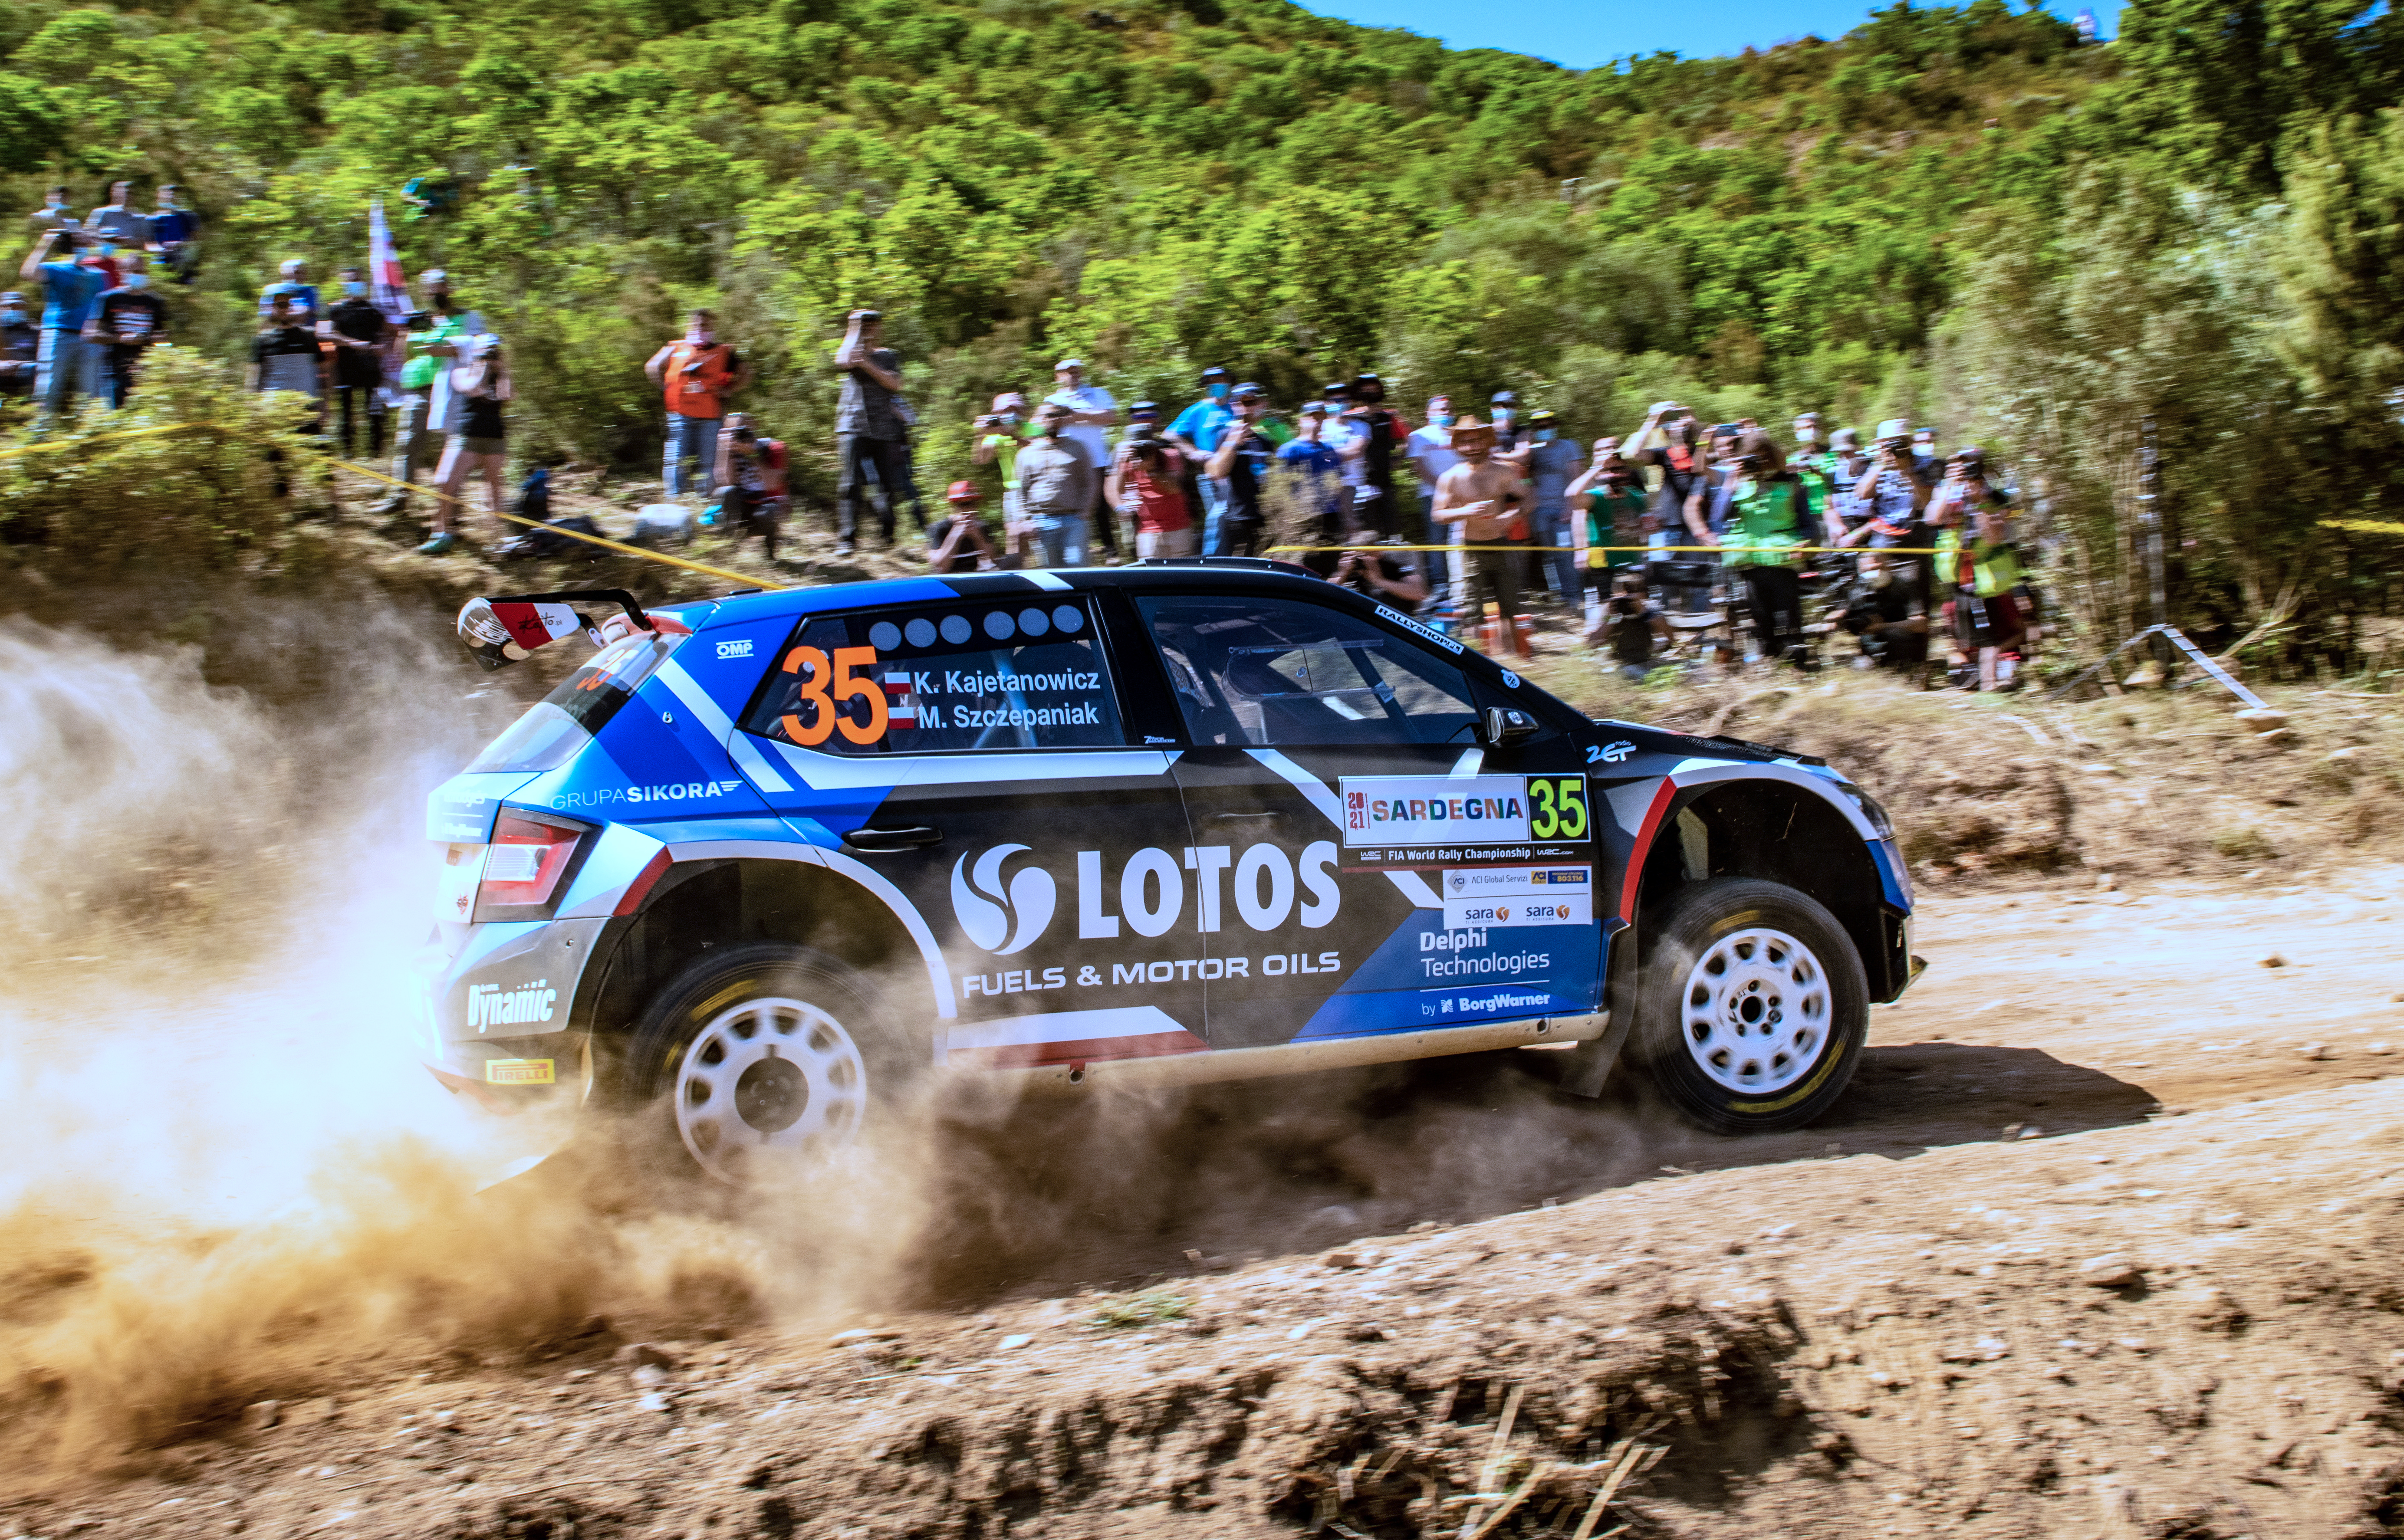 Rally Estonia: SKODA driver Andreas Mikkelsen wants to strengthen lead in WRC2 category - Image 2